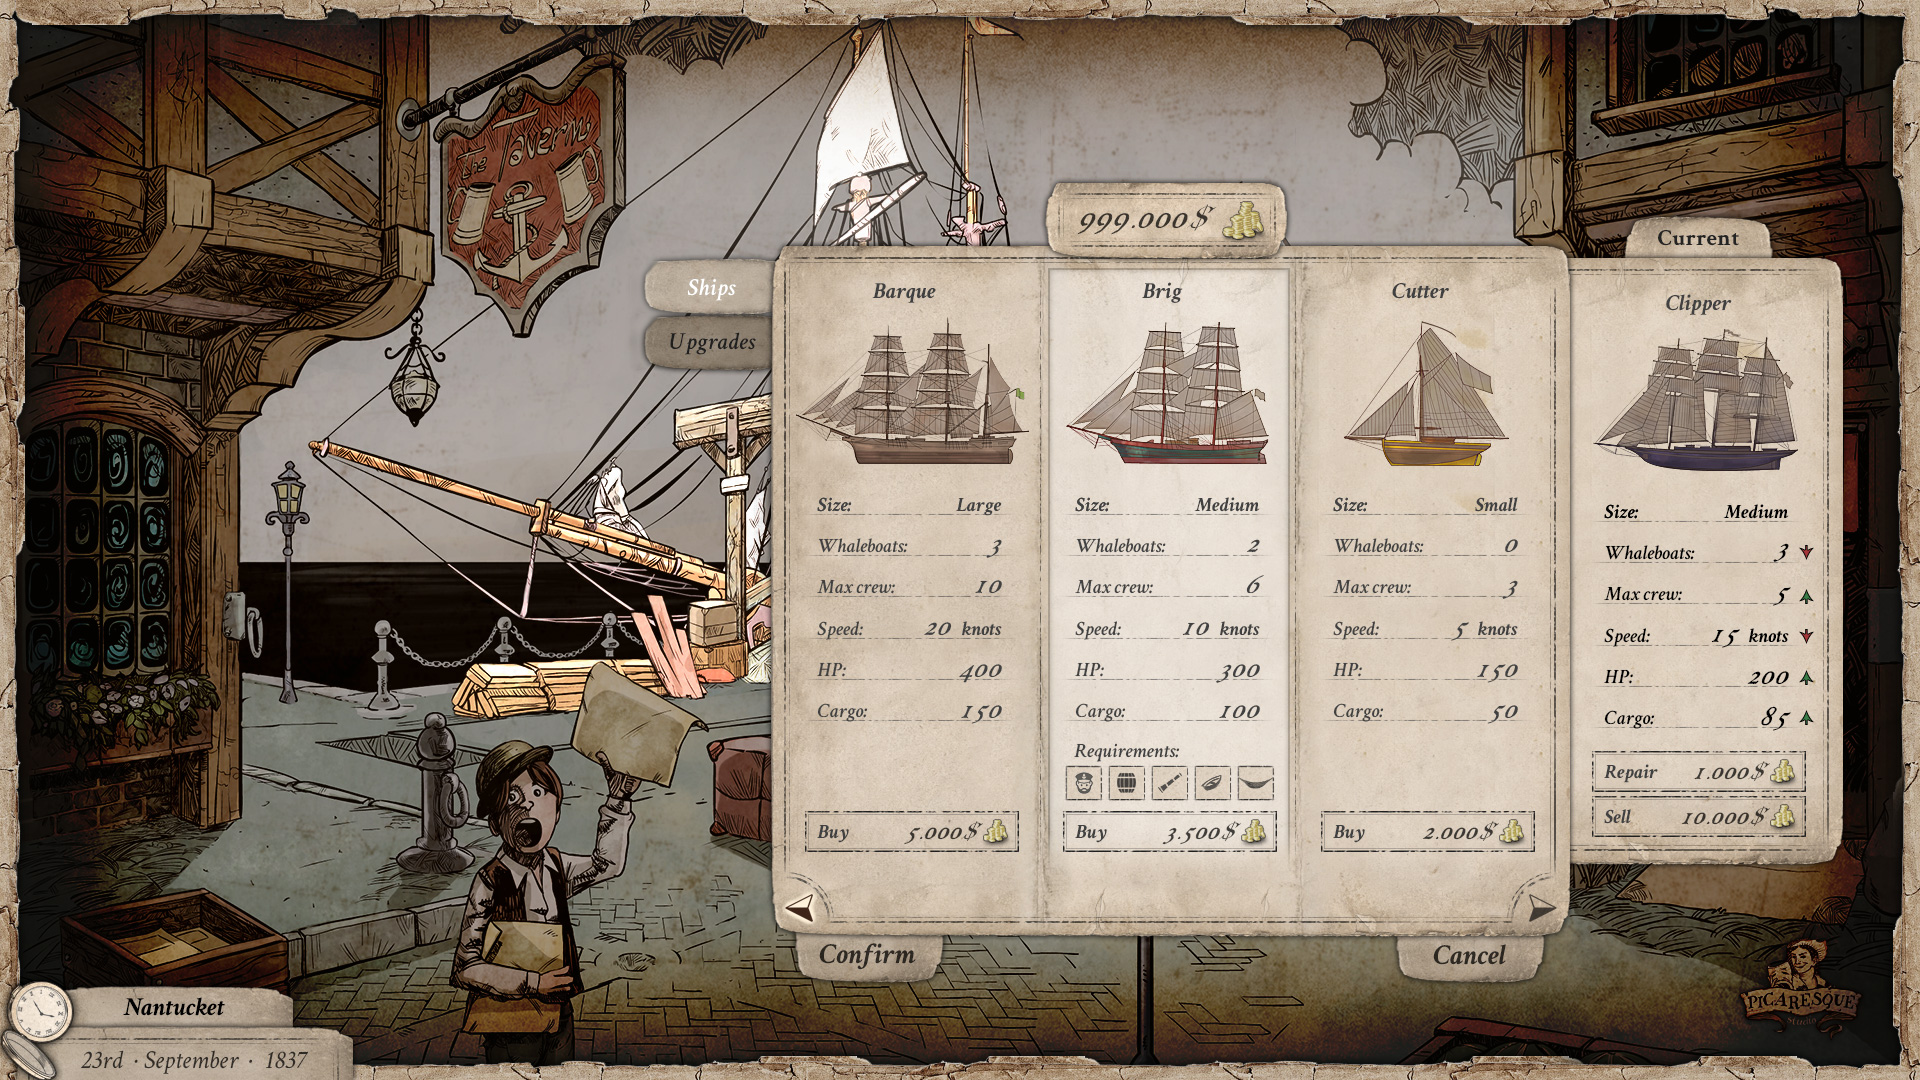 Shipwright_ShipsRequirements